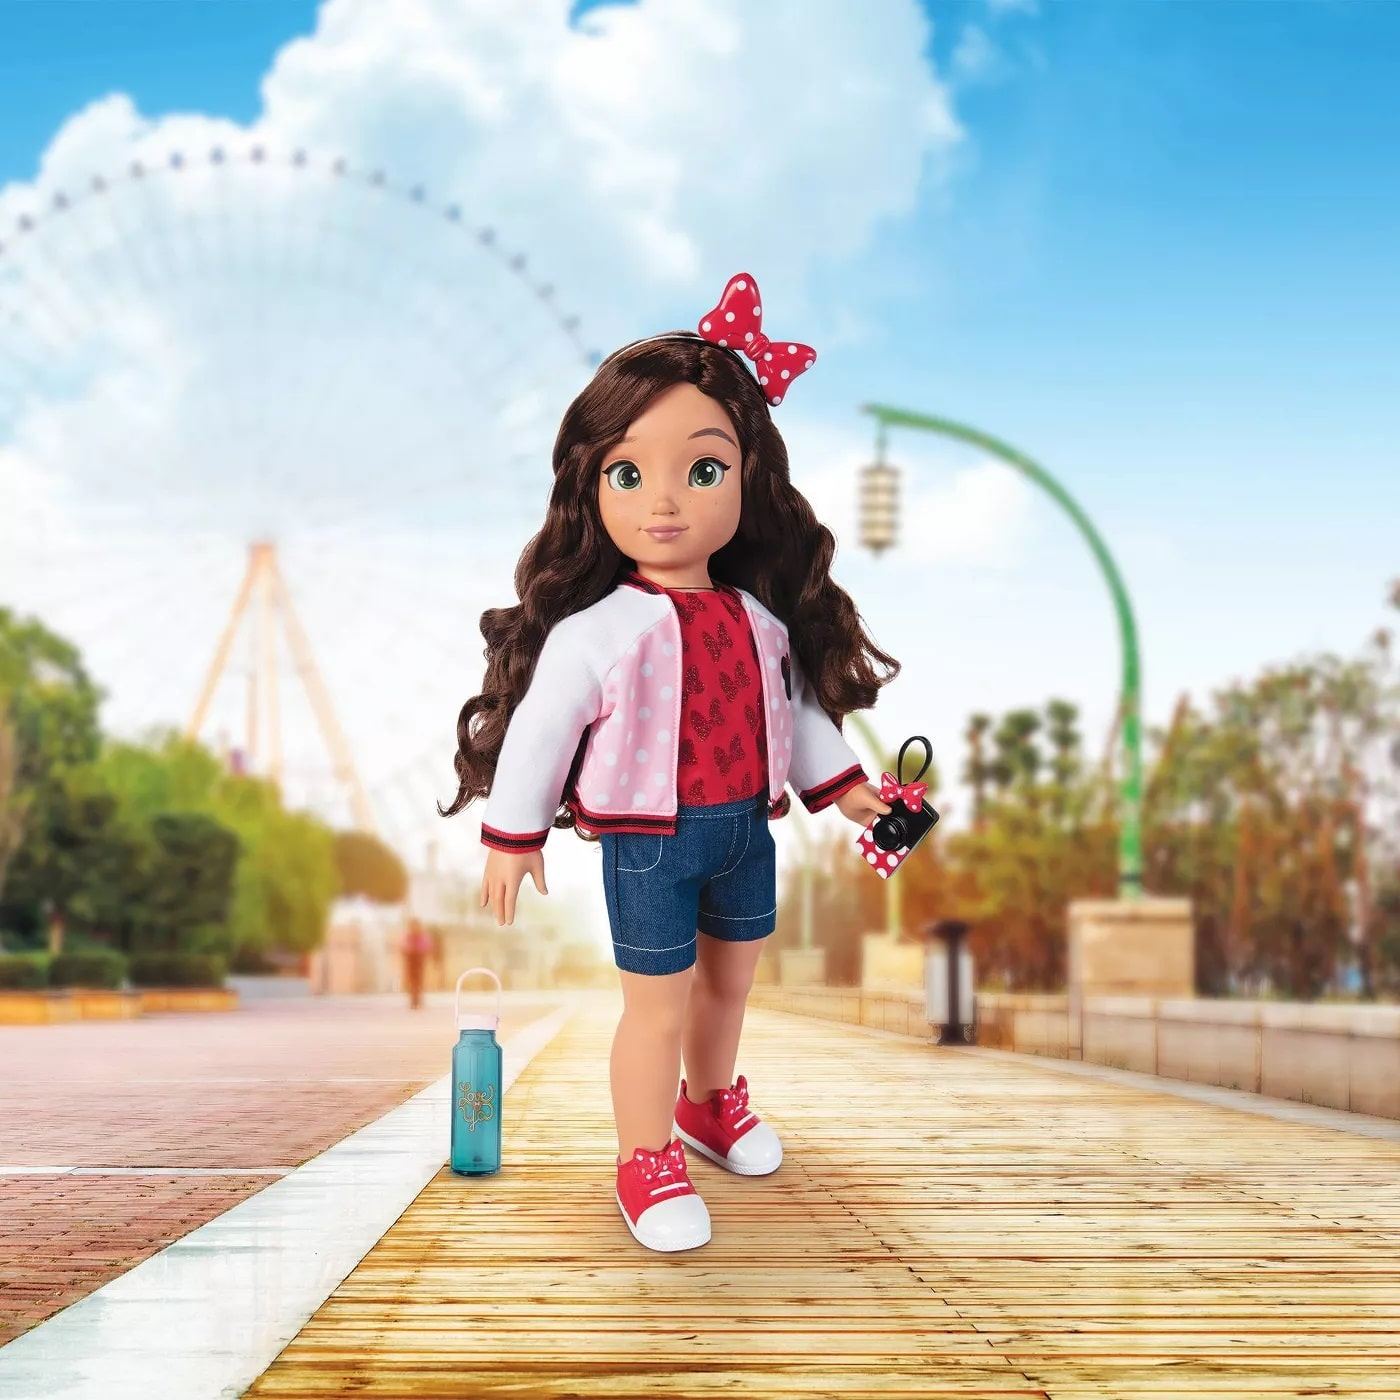 Disney ily 4EVER fashion doll collection is now available at Target 21